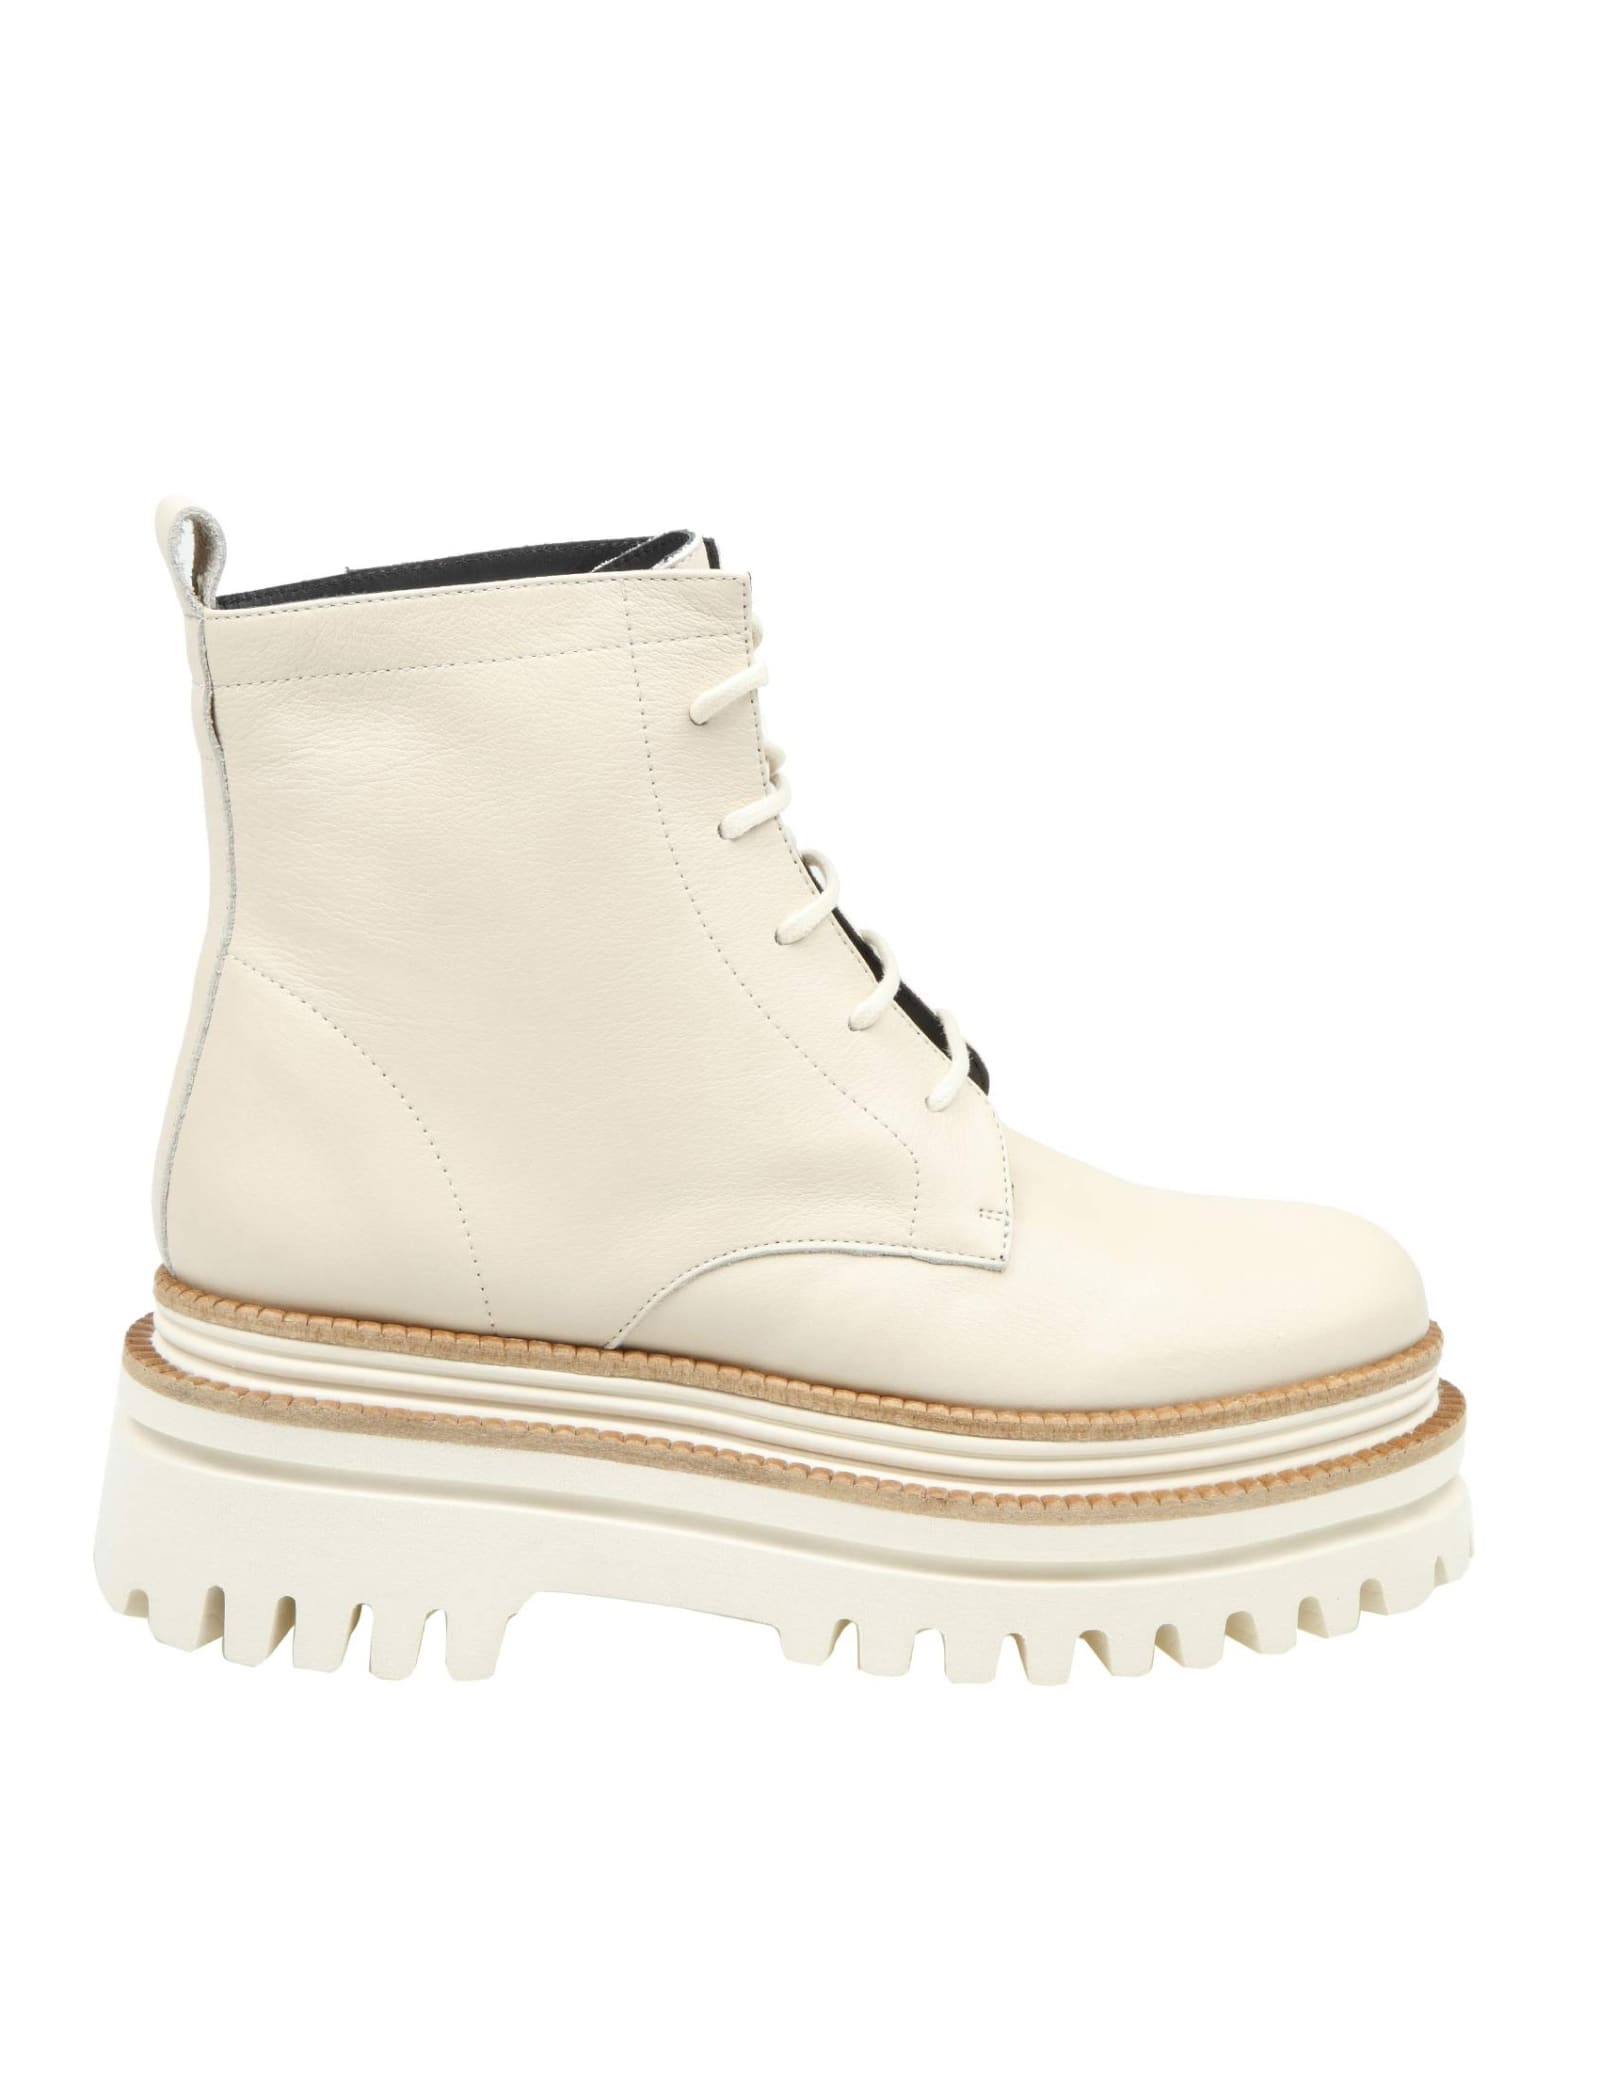 Paloma Barceló PALOMA BARCELO FETHI ANKLE BOOT IN NAPPA AND MILK COLOR